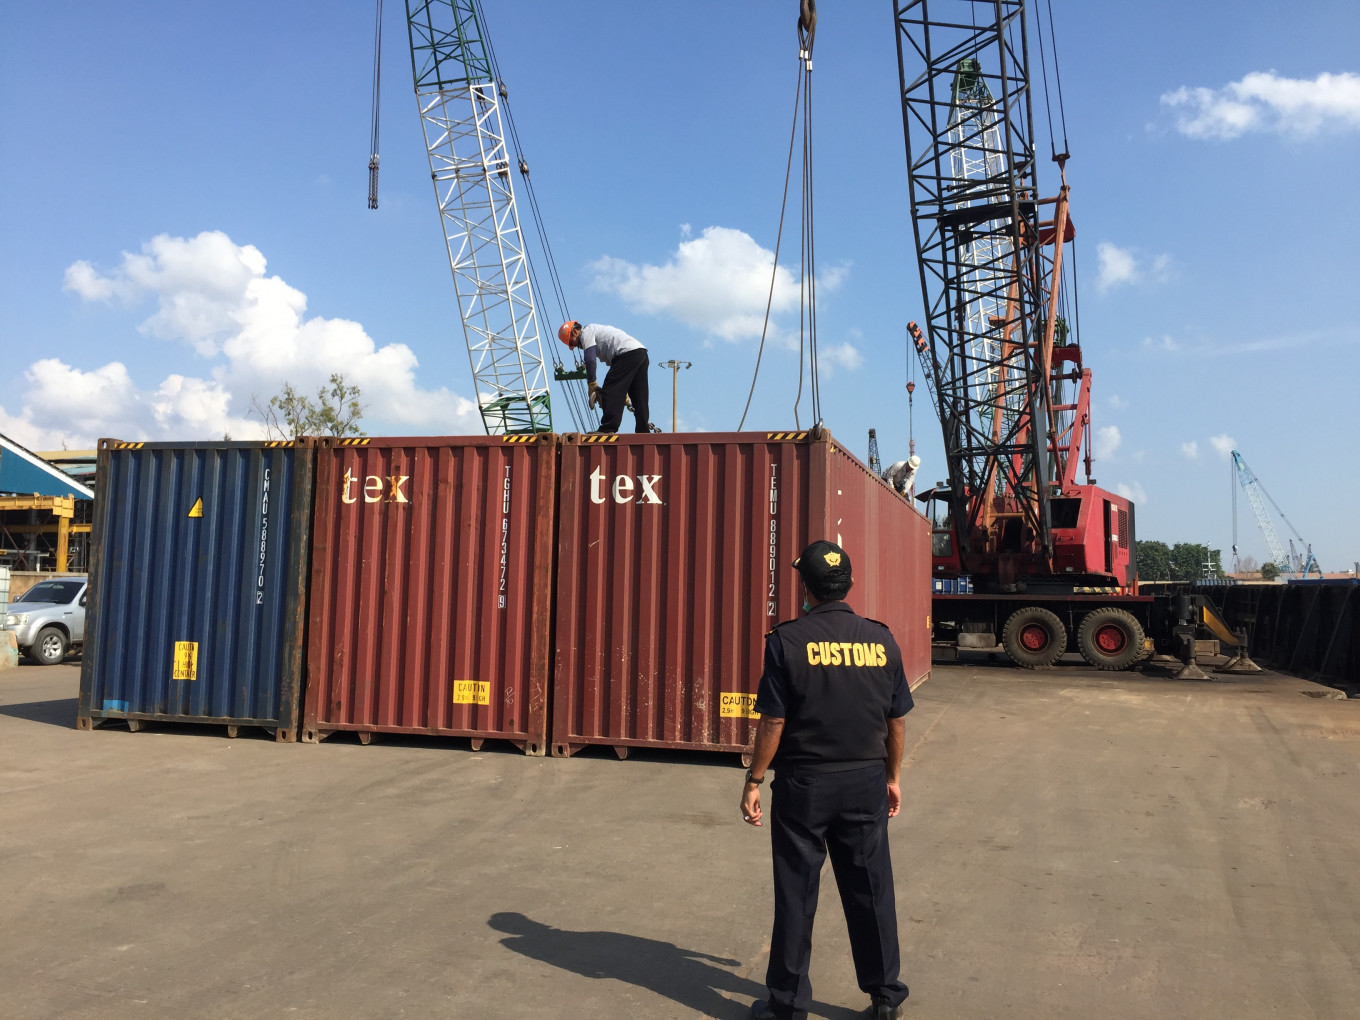 Indonesia sends 7 containers of plastic waste back to France, Hong Kong